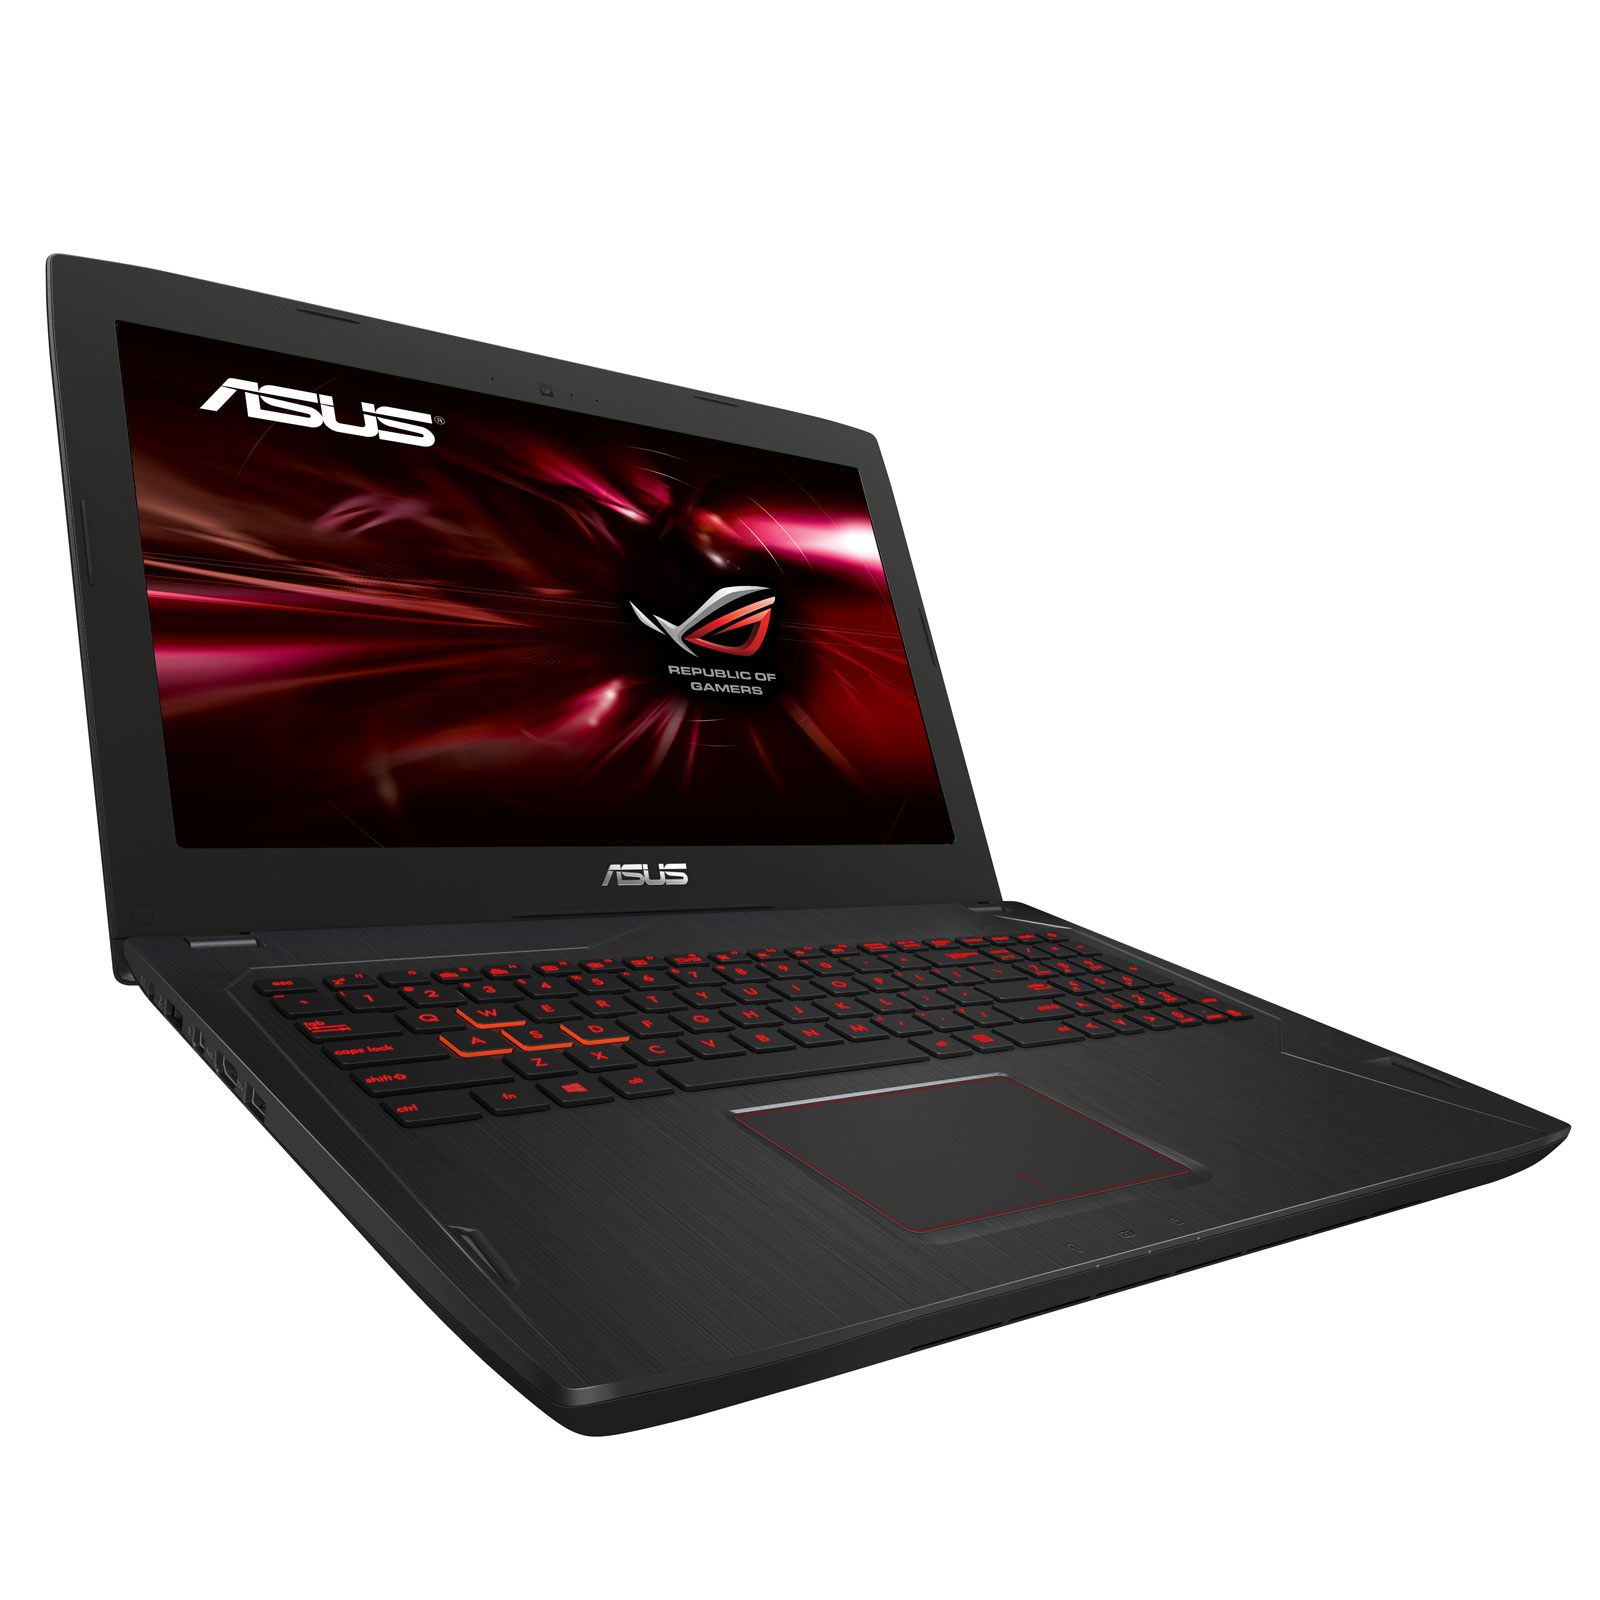 PC portable ASUS FX502VM-DM572 à 1399€